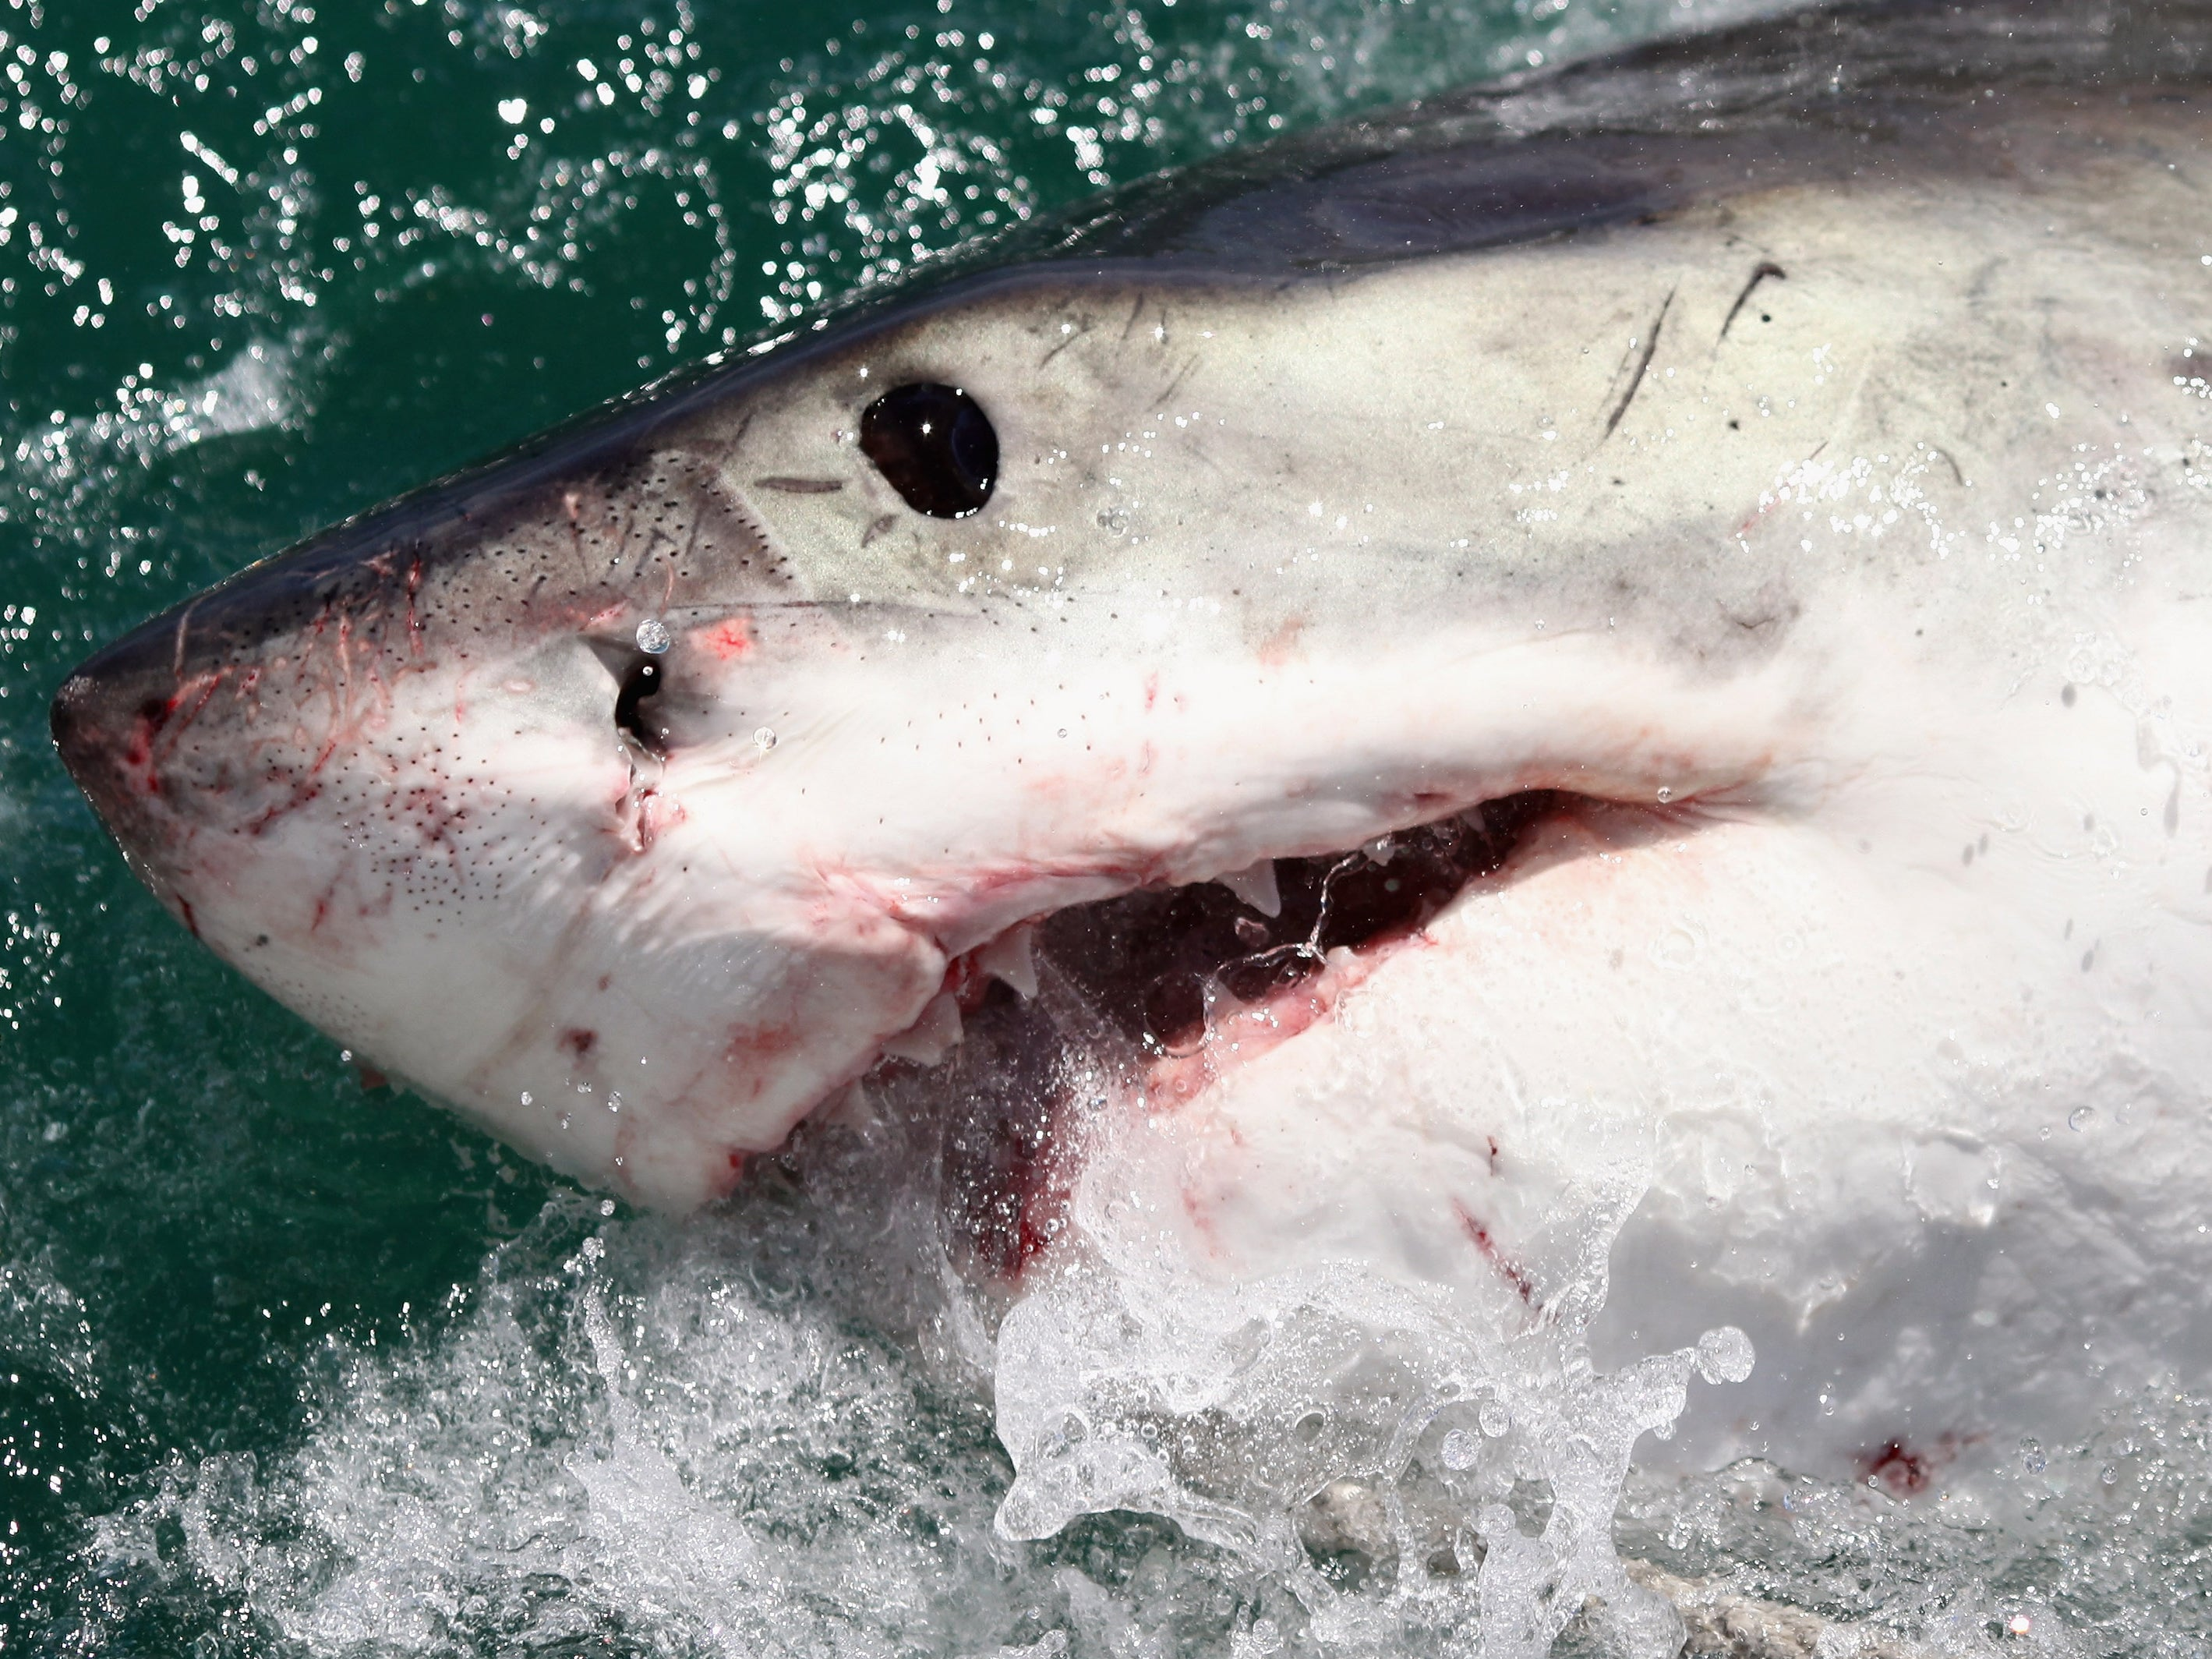 How to survive a shark attack: What to do if you encounter